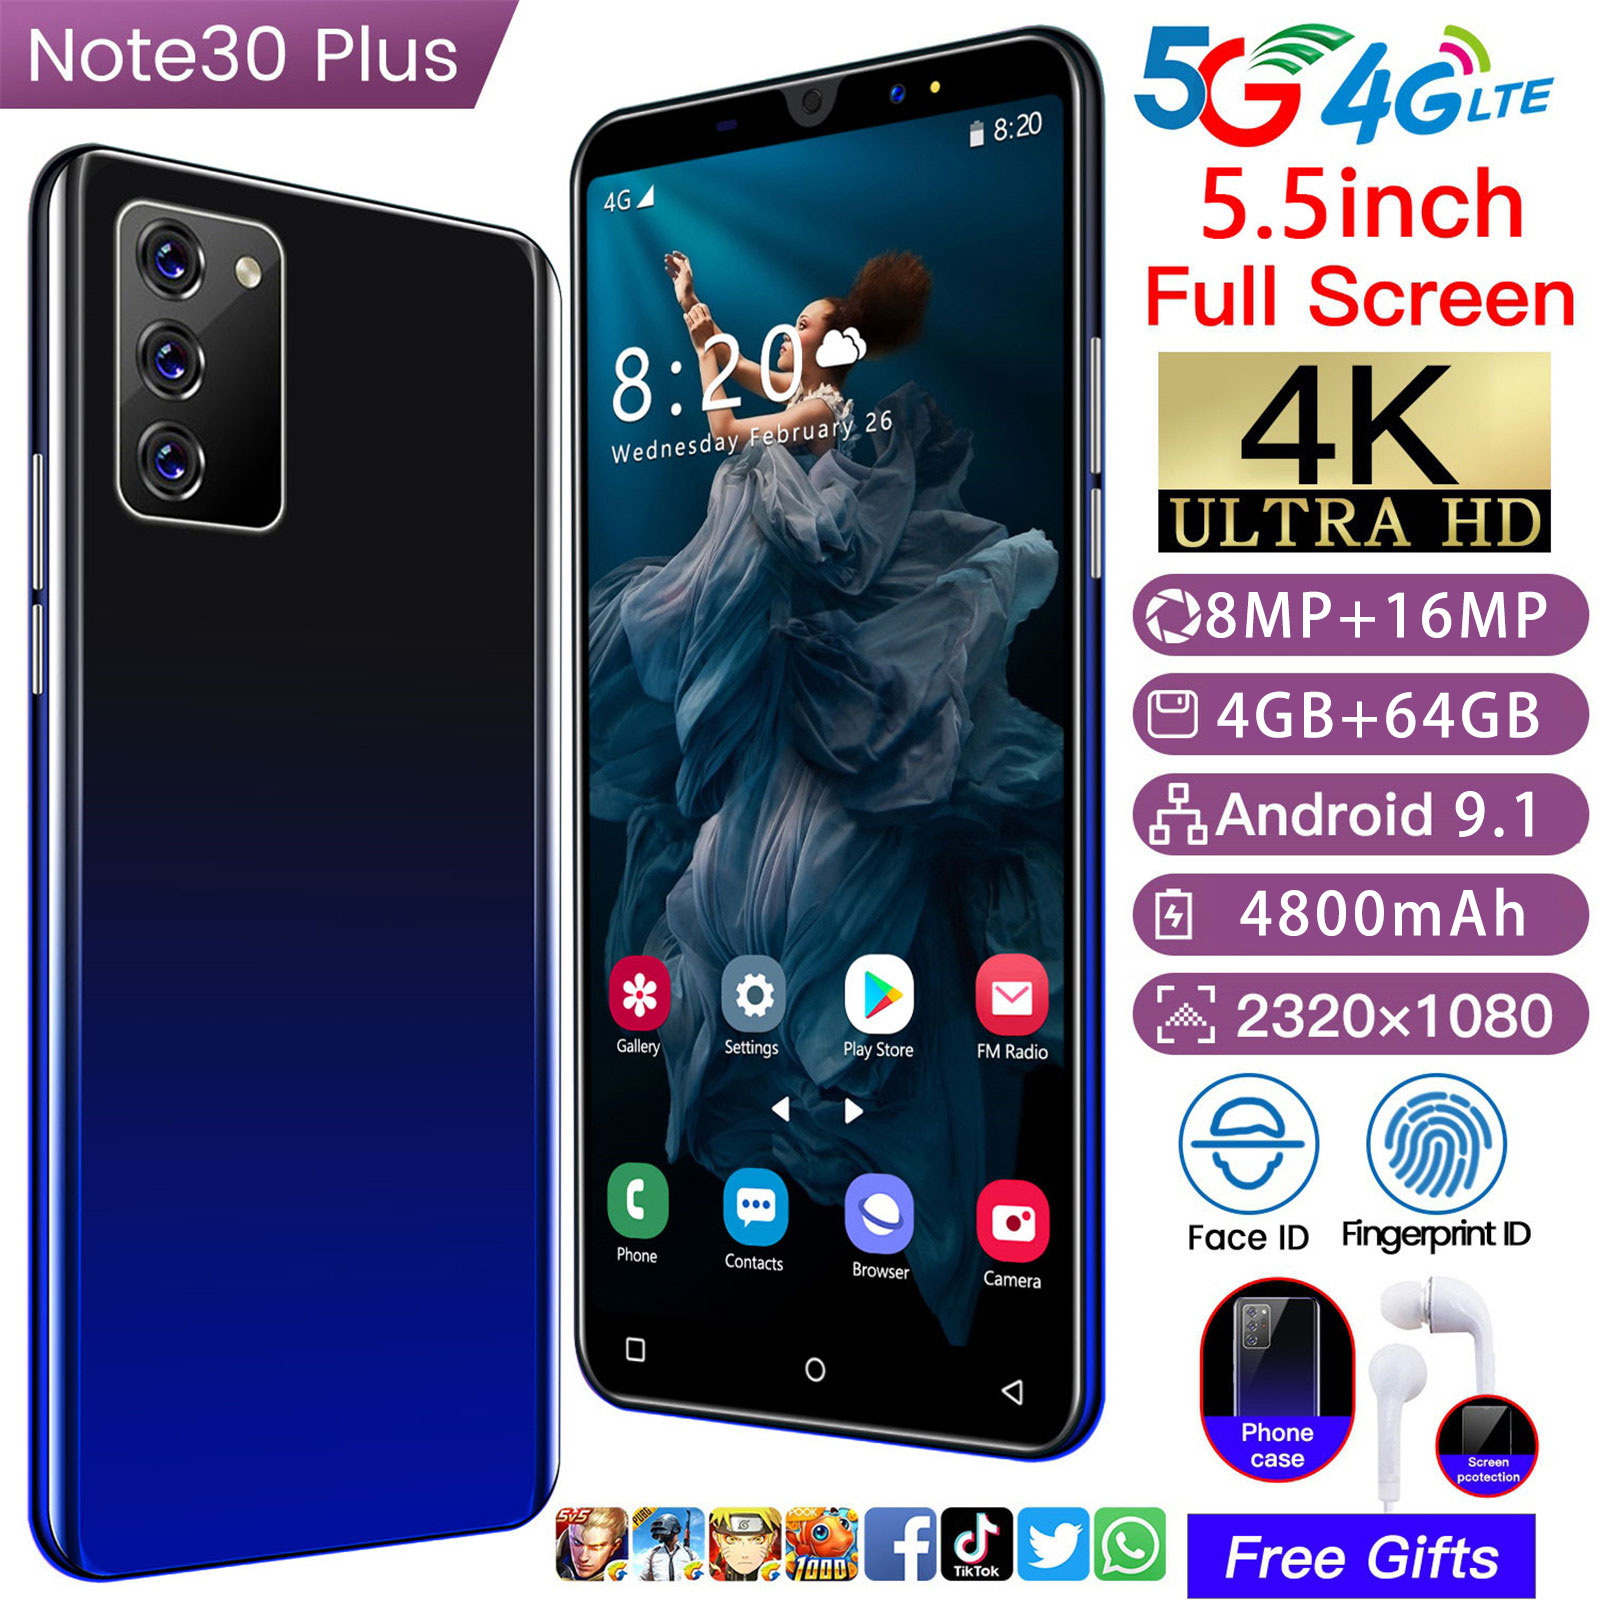 New Arrival Note 30 Plus 5.5 Inch Smartphone 2021 Global Version 4+64 G 8+16 MP Android 9.1 4800 MAH  5G Face ID Fringerprint ID